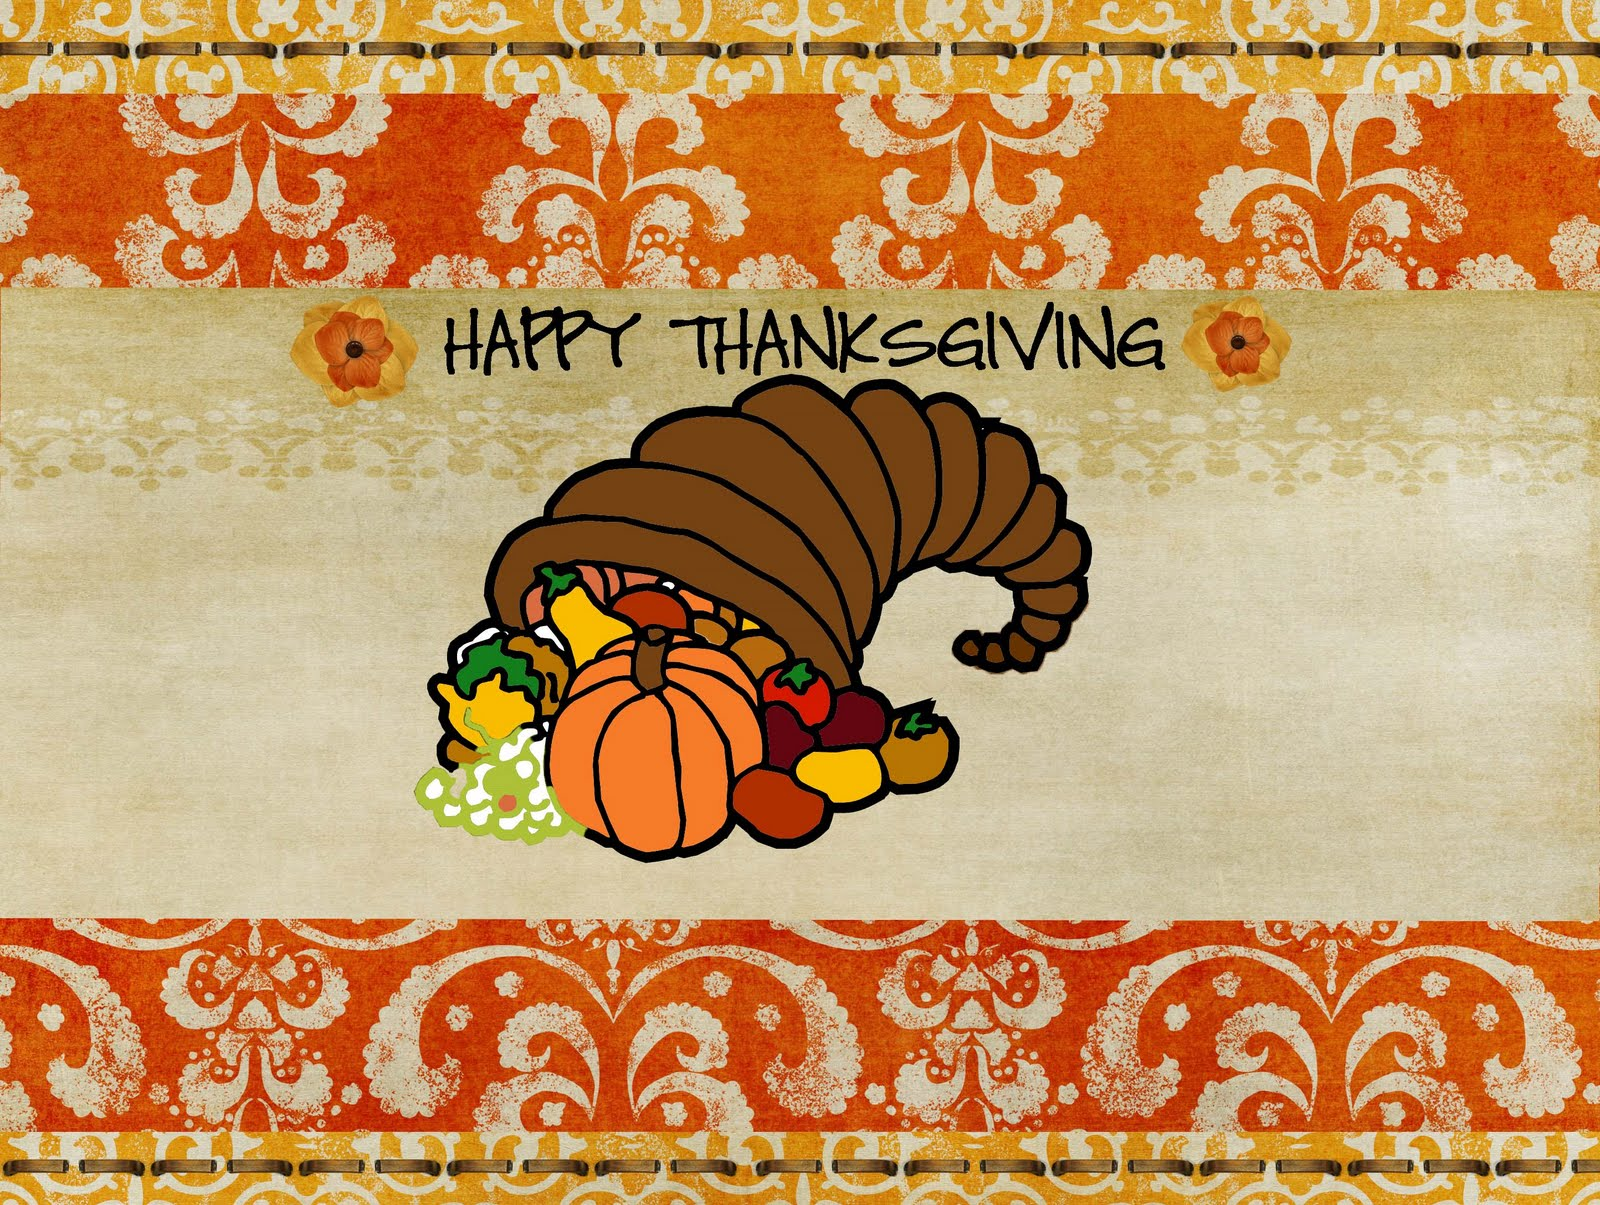 Happy Thanksgiving Card.Thanks Giving Cards